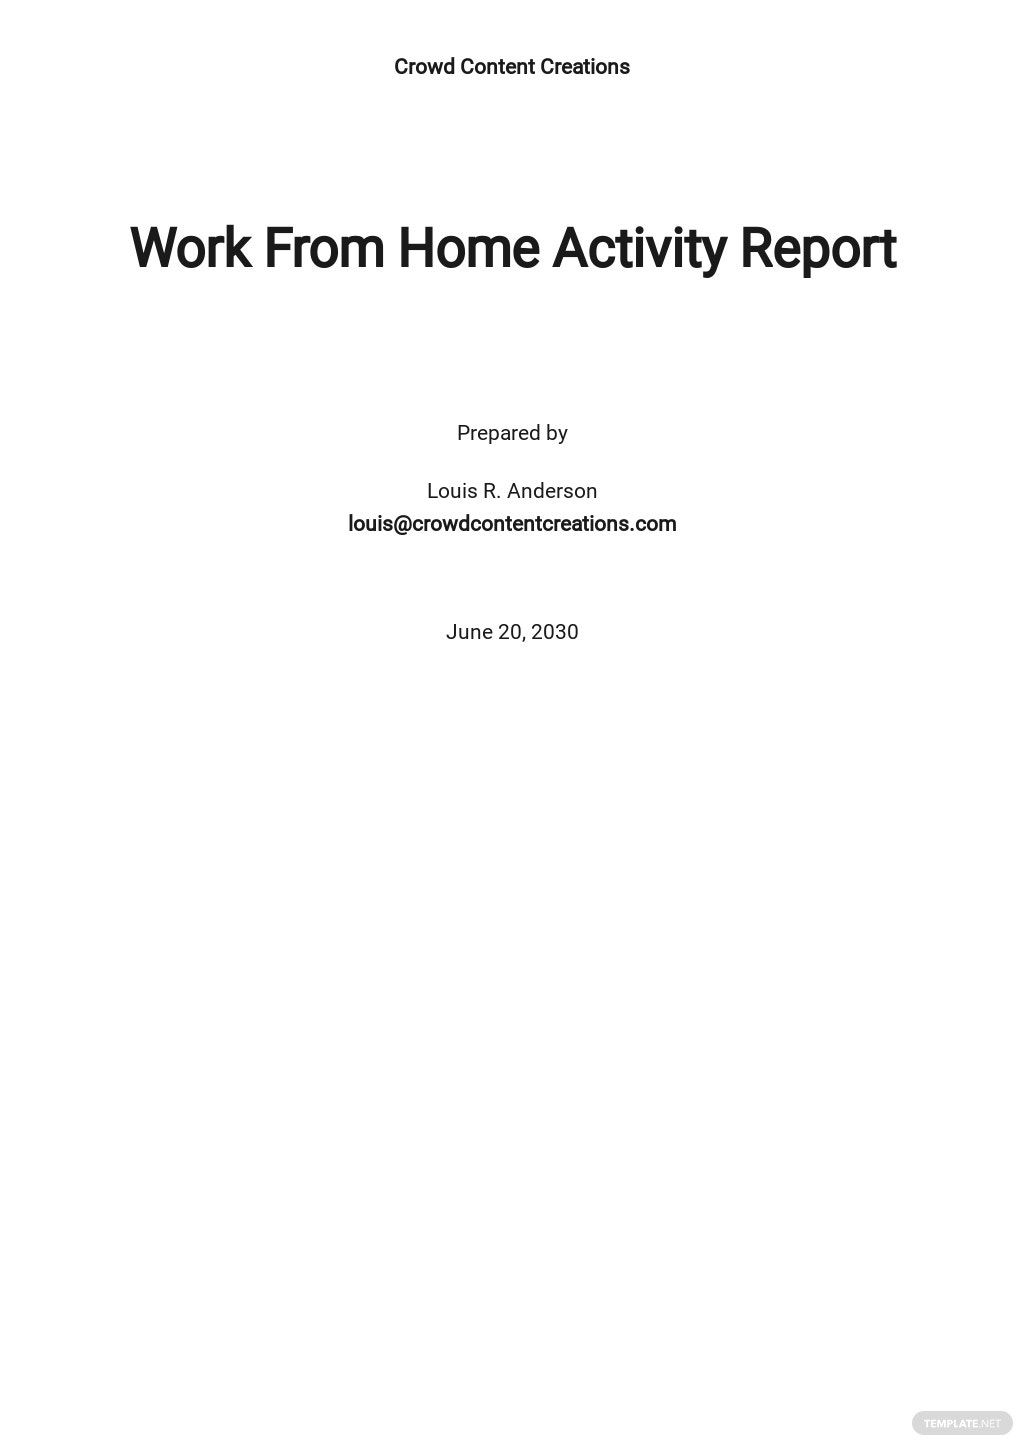 Work From Home Activity Report Template.jpe